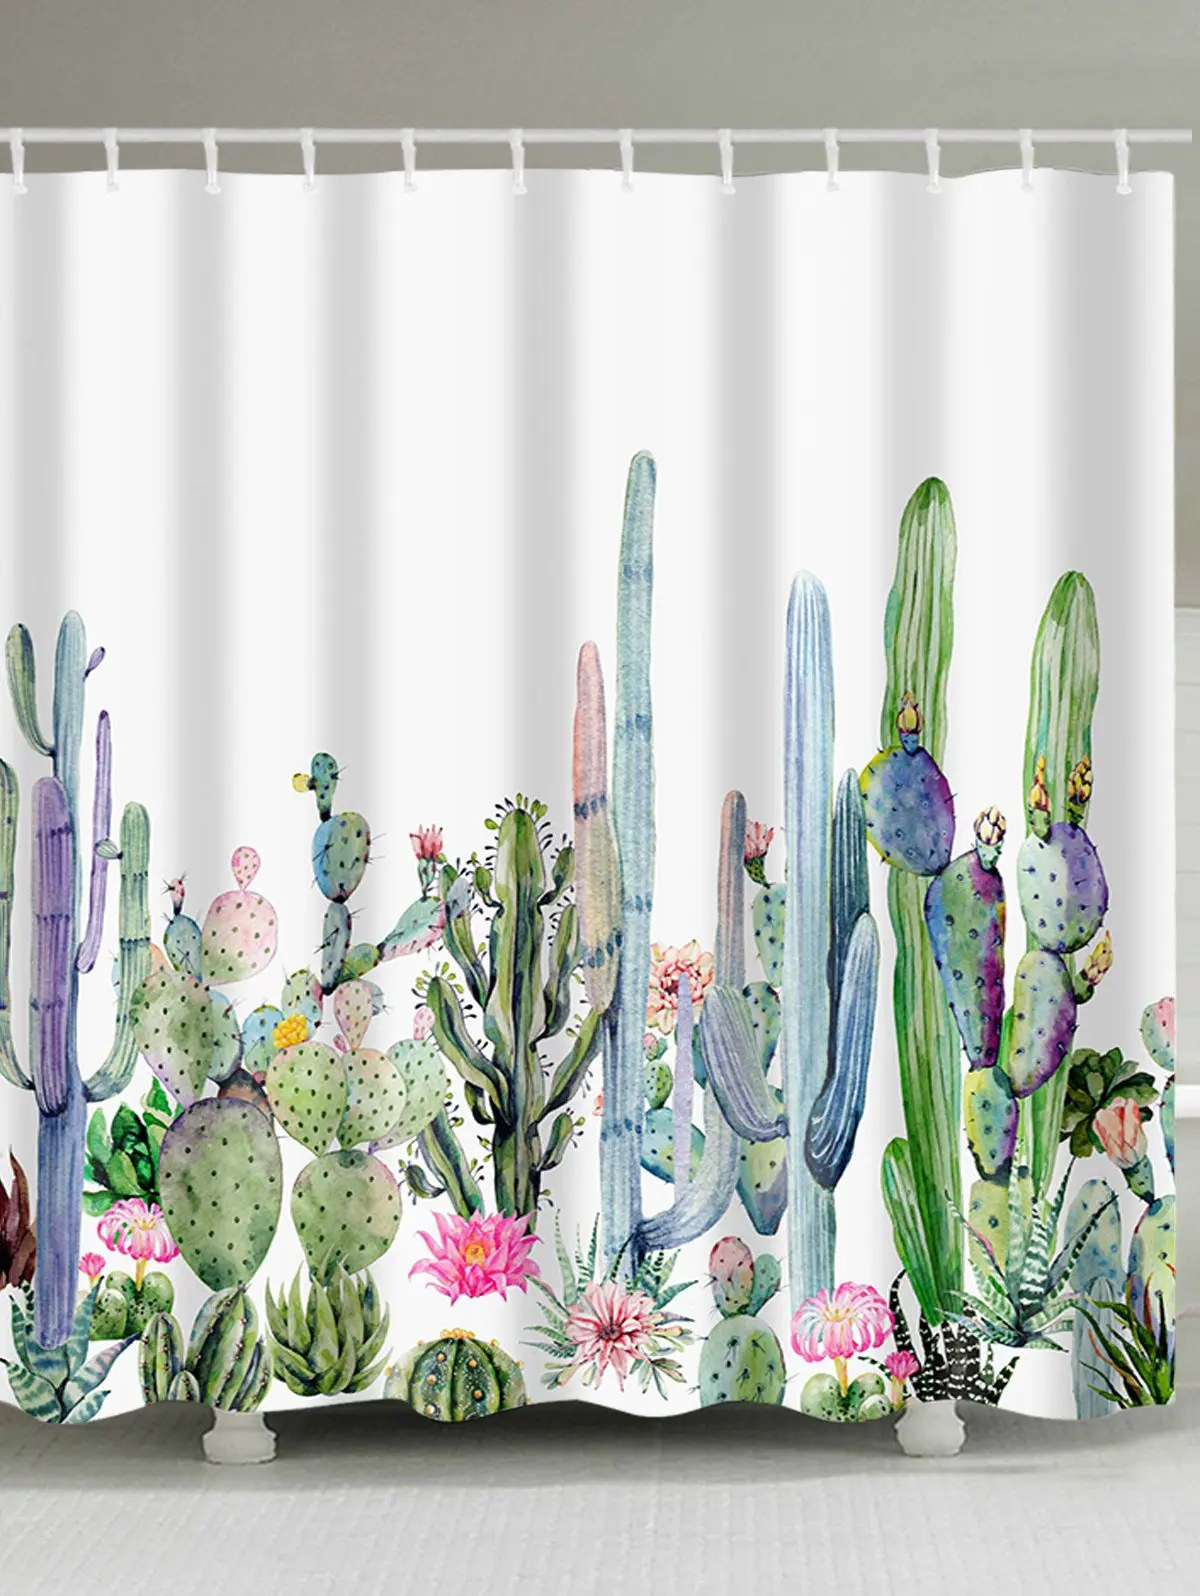 Bathroom Shower Curtain Watercolor Painting Cactus Print Bathroom Shower Curtain